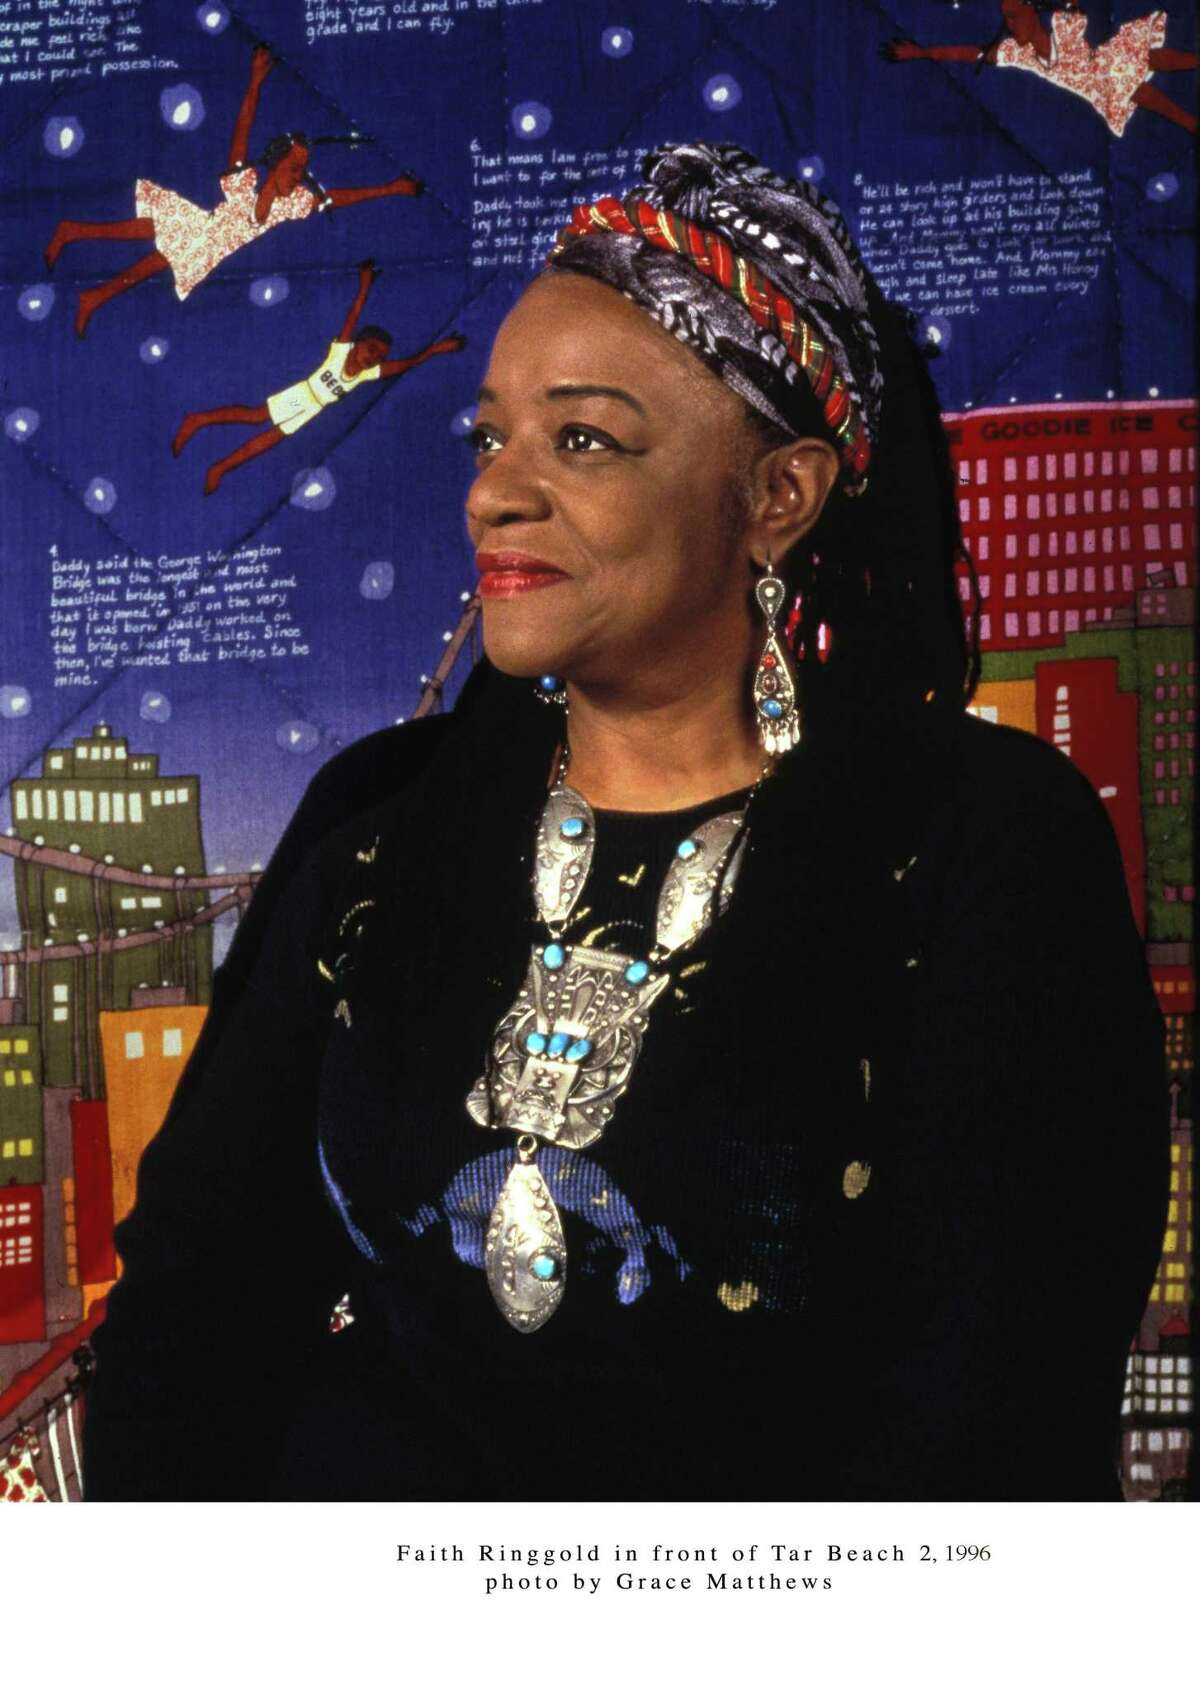 """Faith Ringgold, an artist known for confronting race relations in her work, will design new stained-glass windows for Grace Hopper College's common room. She is shown in front of her 1990 work """"Tar Beach #2."""""""